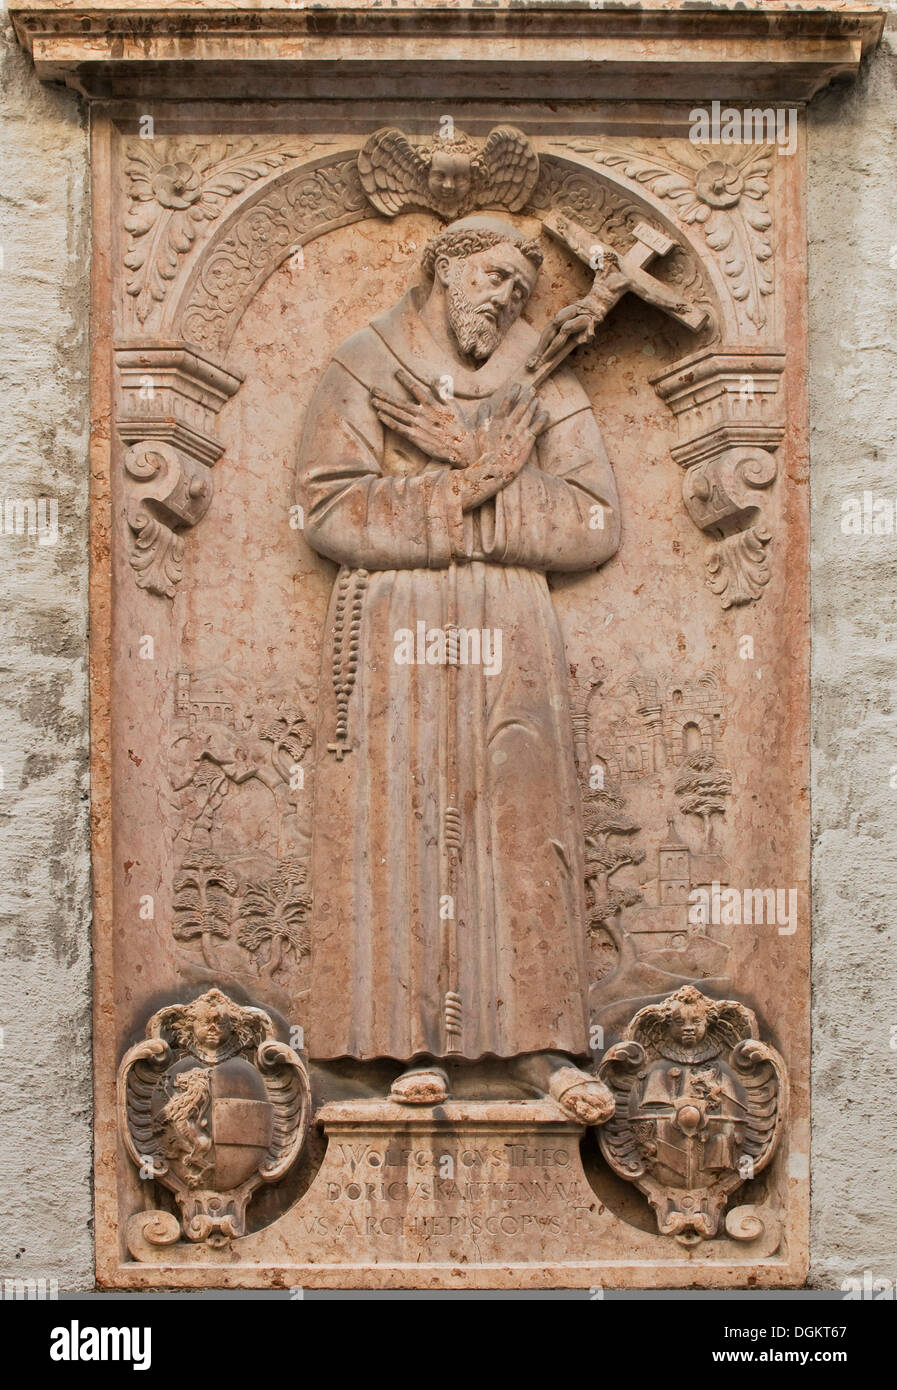 Relief, Francis of Assisi, with an inscription and the coat of arms of the Archbishop Wolf Dietrich von Raitenau - Stock Image